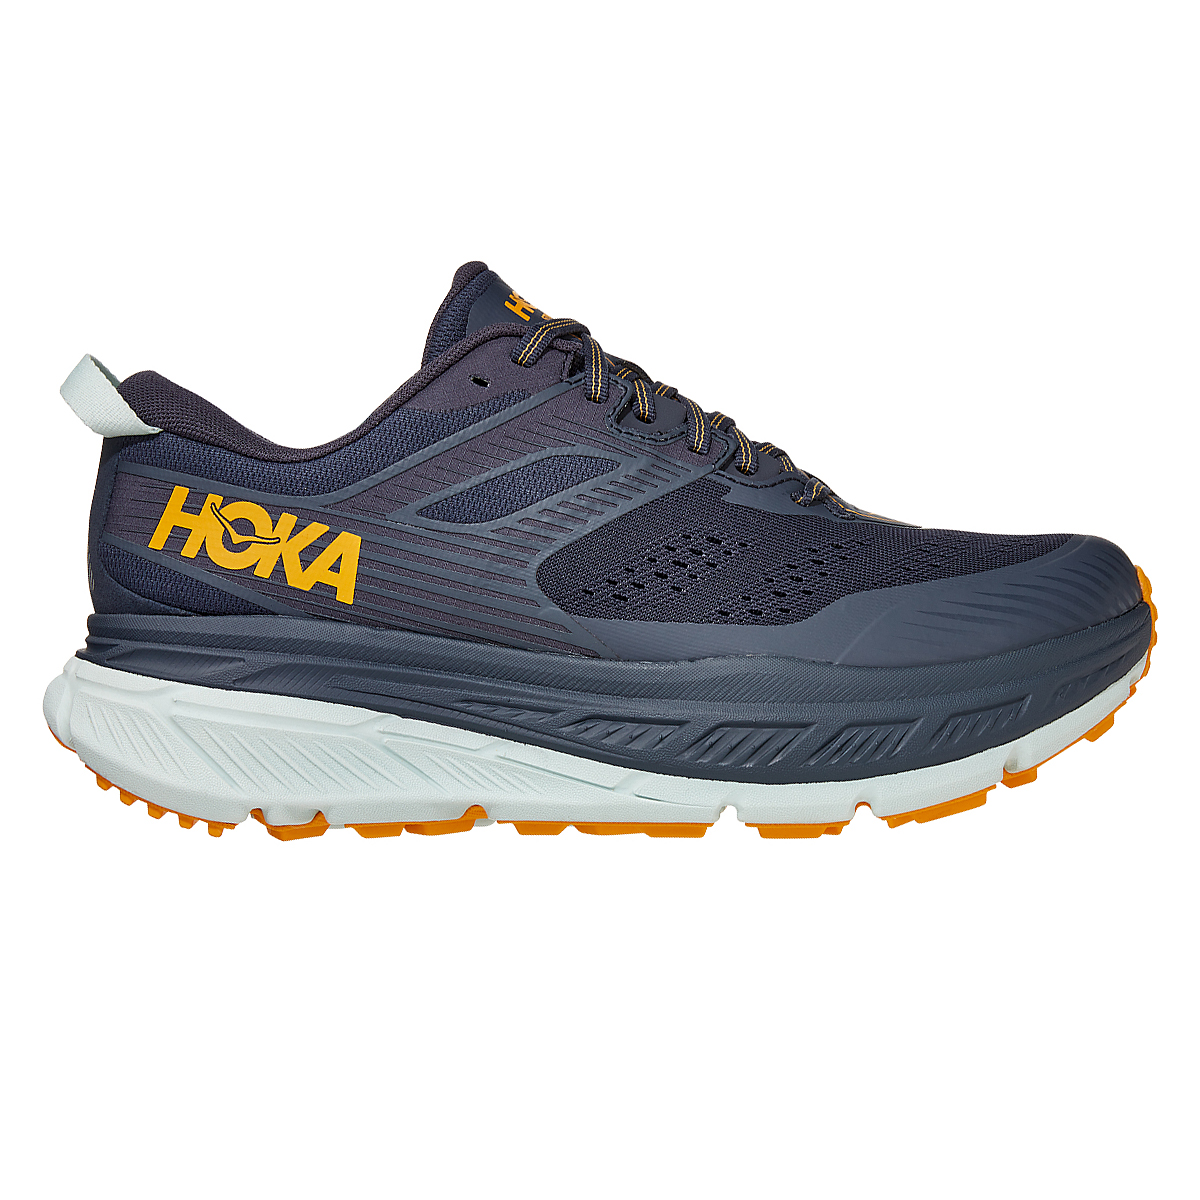 Men's Hoka One One Stinson Atr 6 Trail Running Shoe - Color: Ombre Blue - Size: 7 - Width: Regular, Ombre Blue, large, image 1